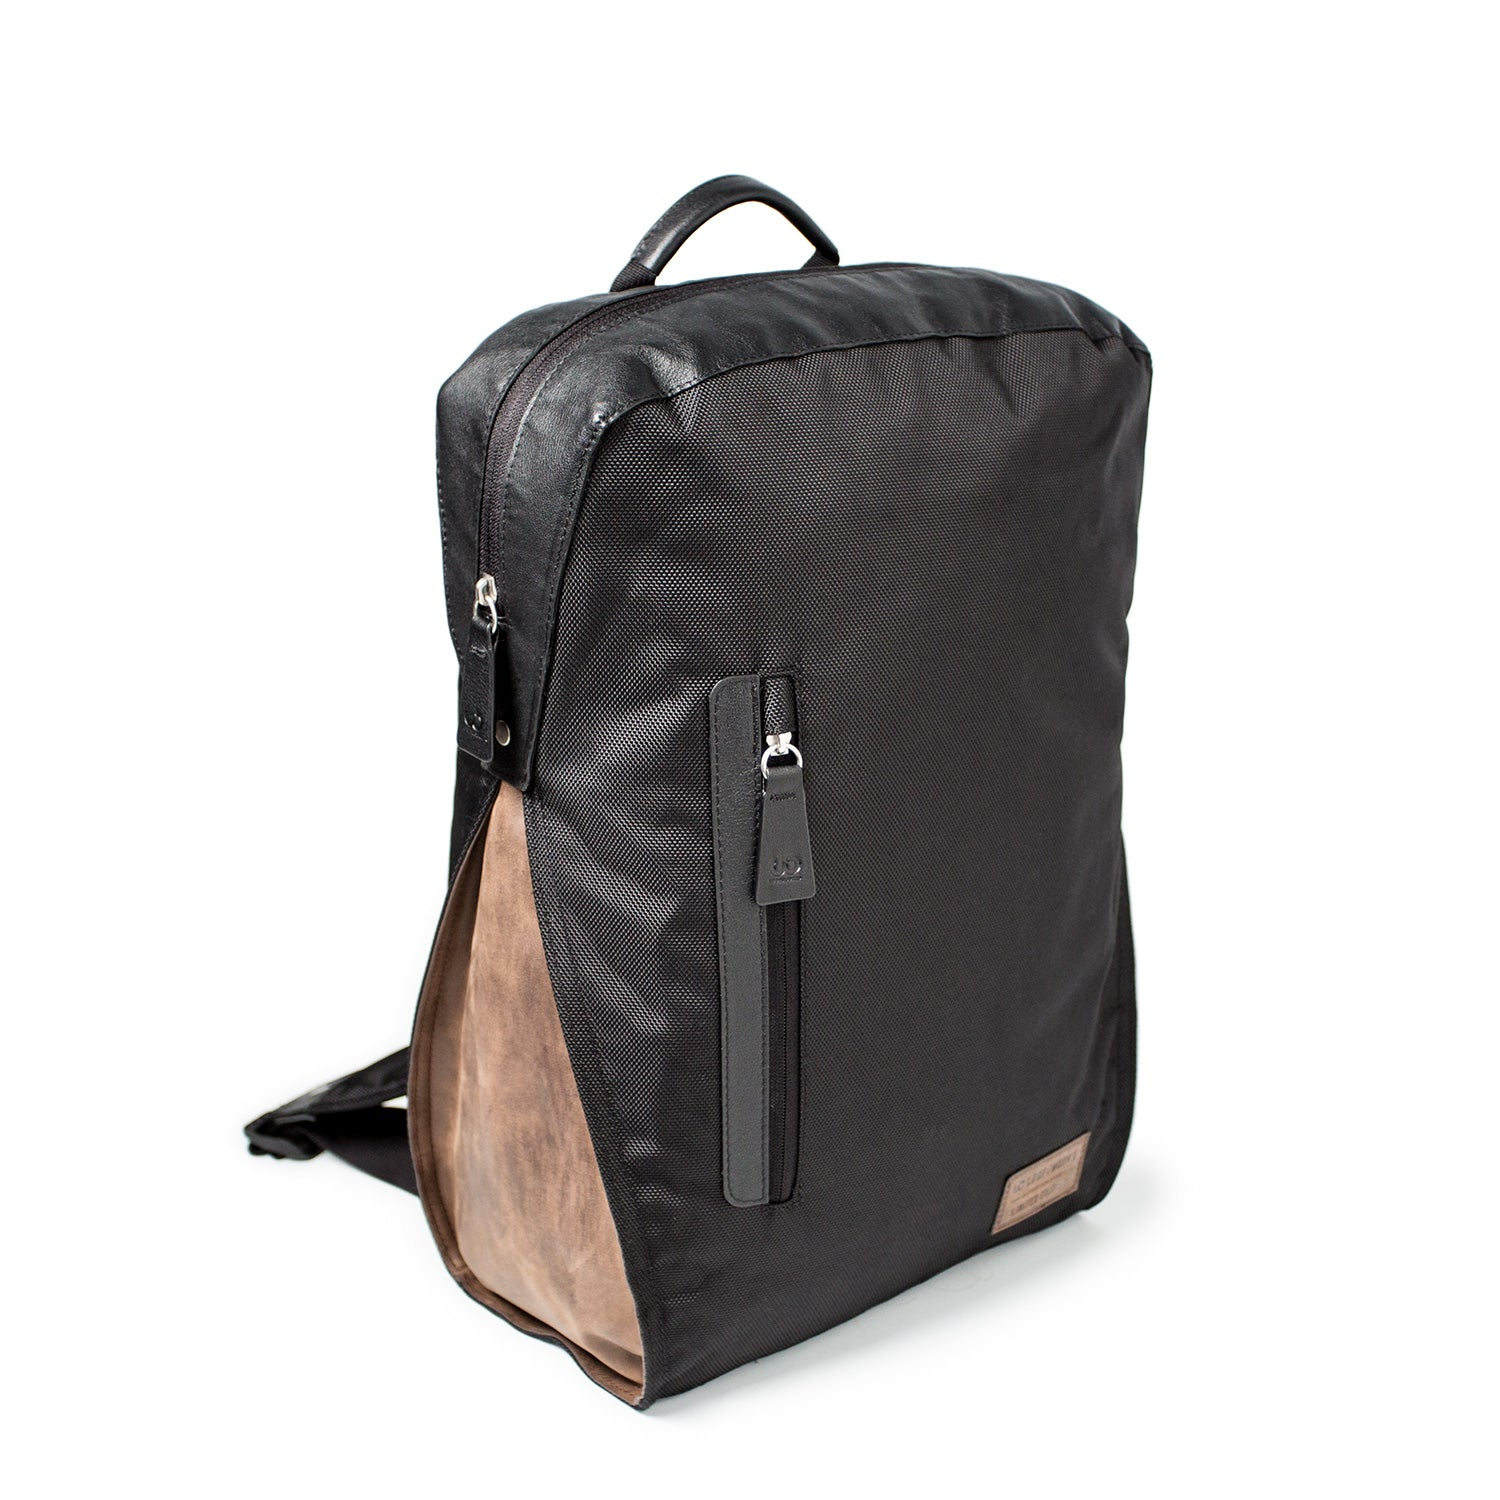 Northwest Backpack Backpacks - Looptworks